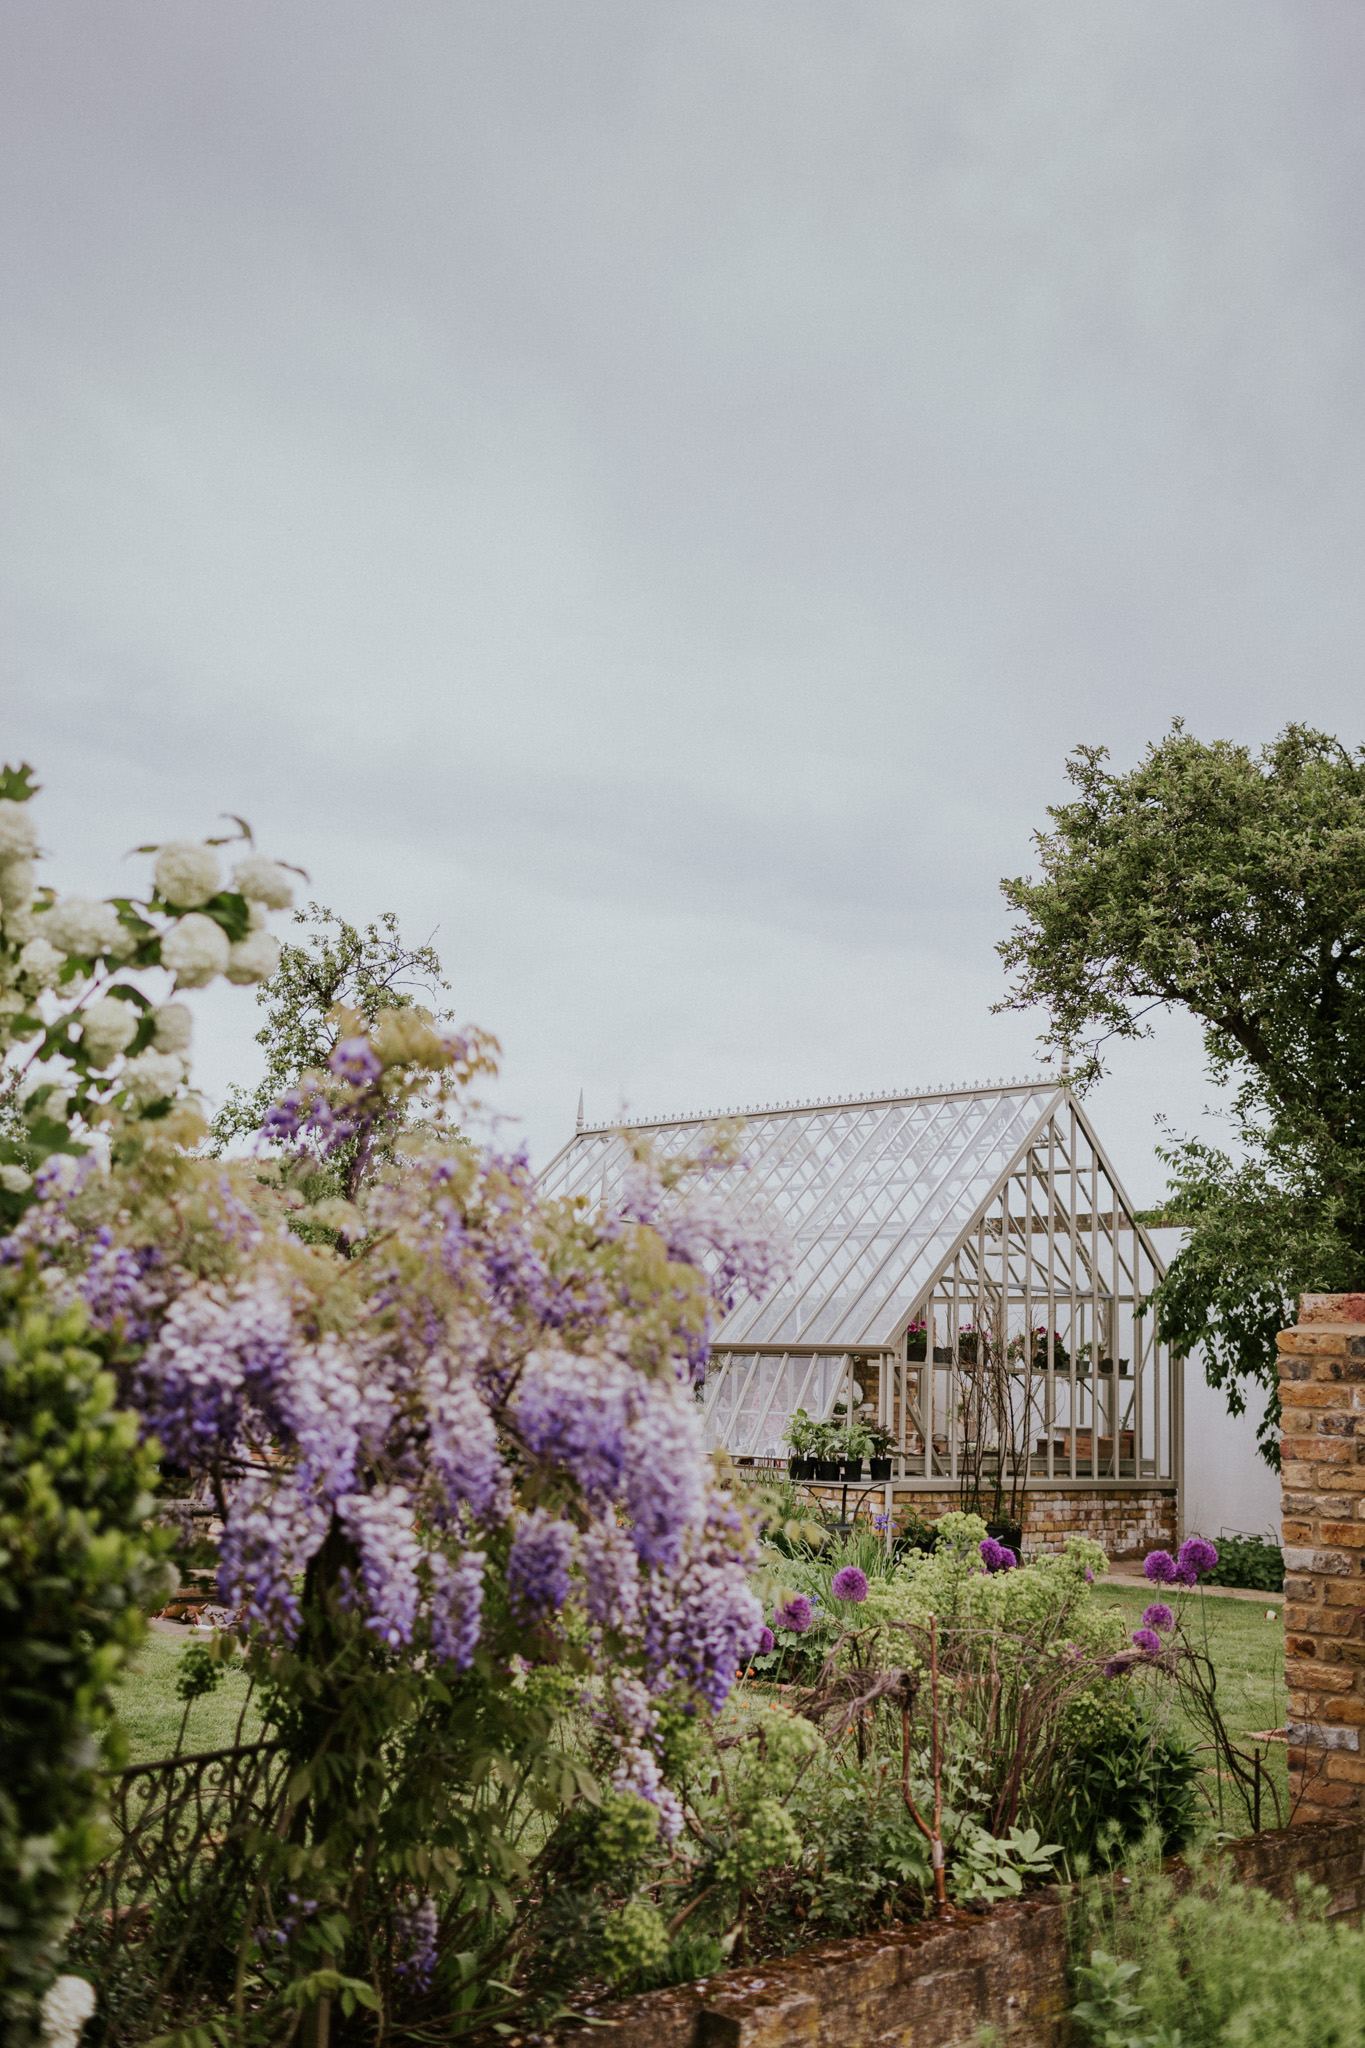 A dreamlike glasshouse in a Secret Garden provides the perfect setting for an intimate wedding party surrounded by lush foliage.